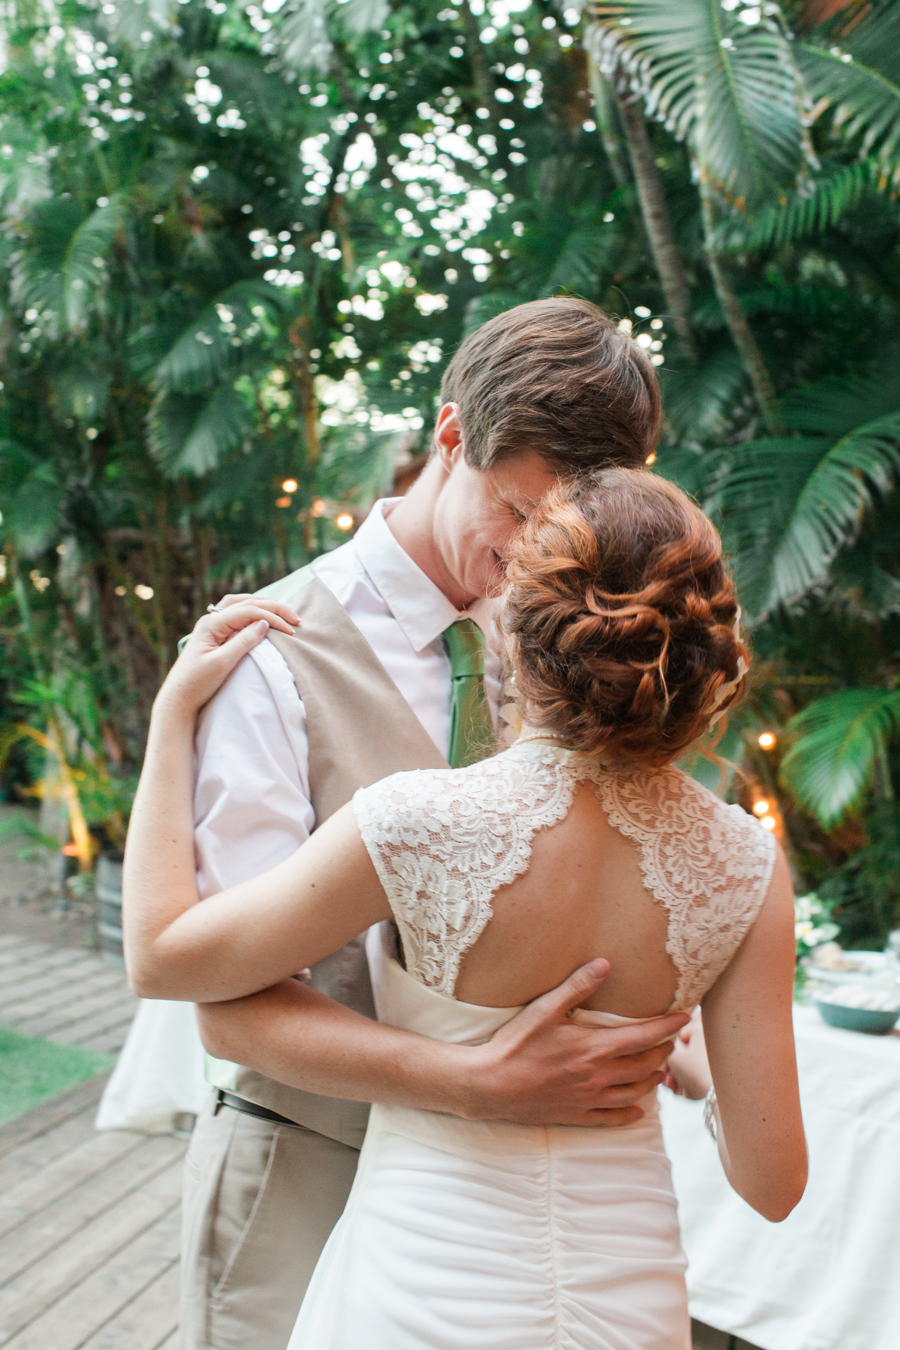 kateweinsteinphoto_juliatodd_wedding_hawaii79.jpg